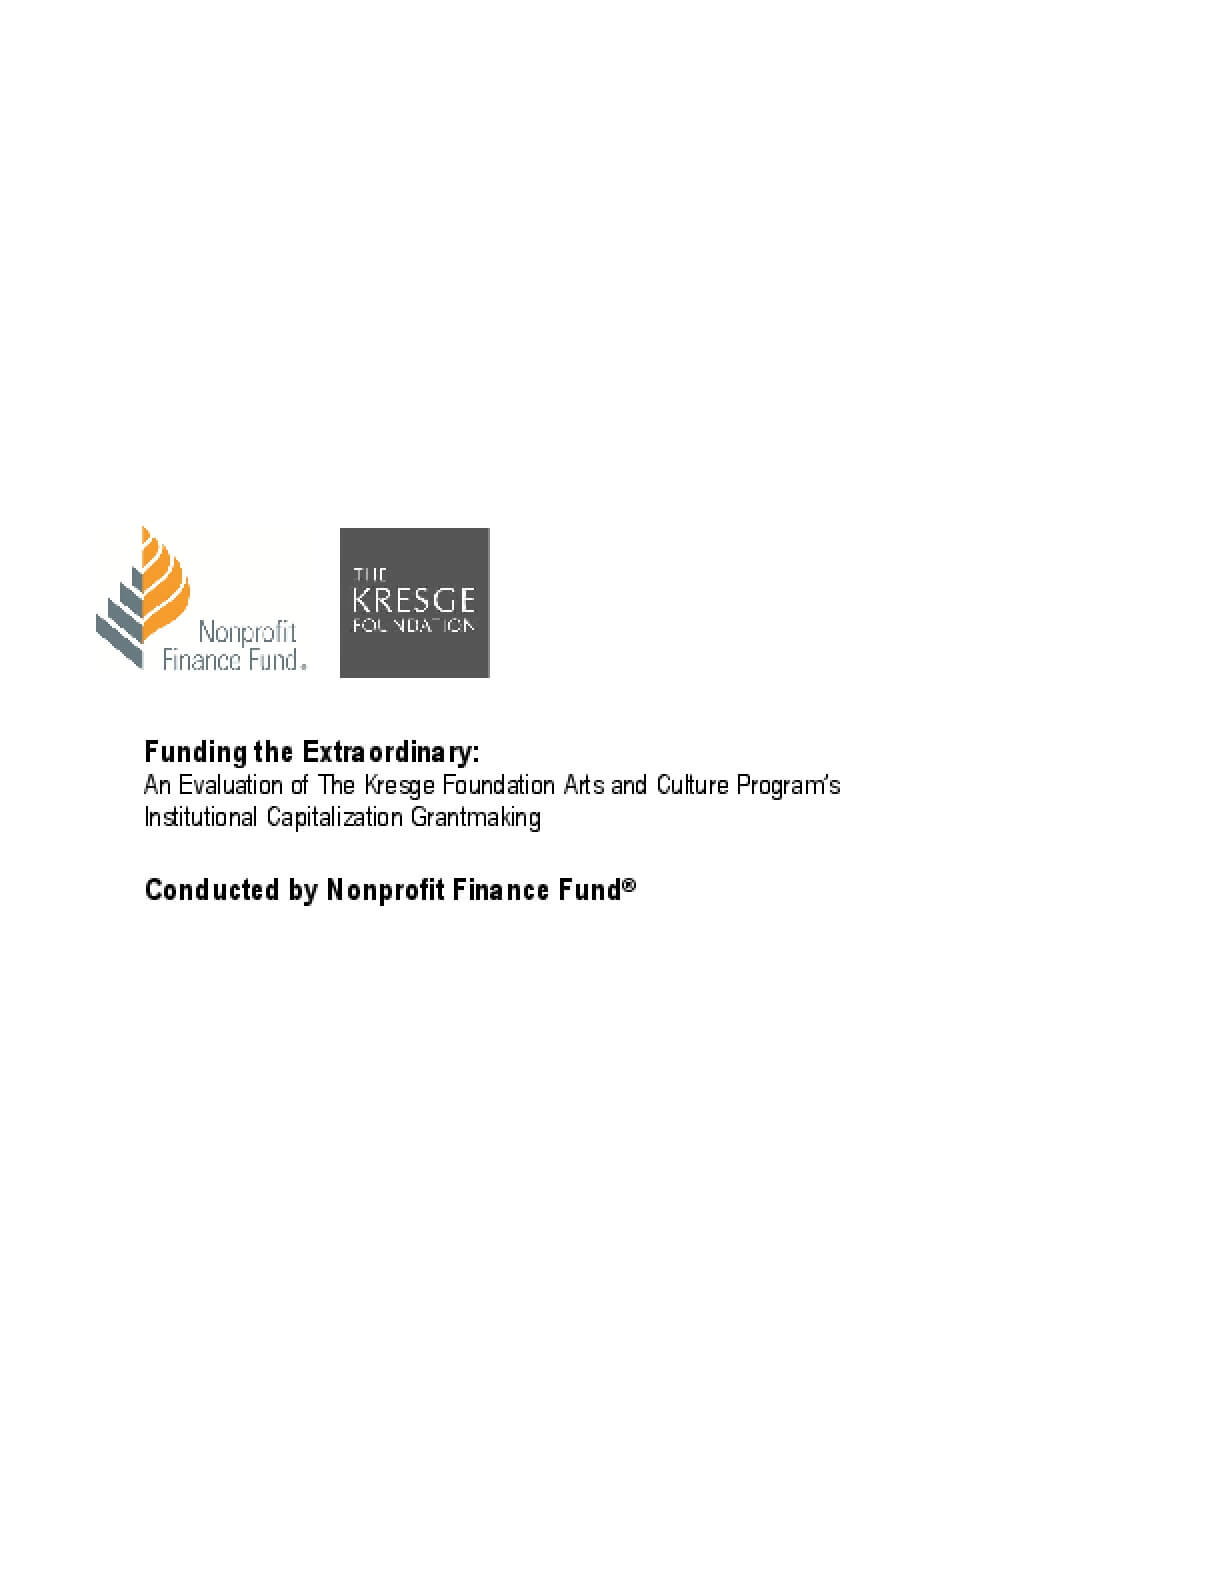 Funding the Extraordinary: An Evaluation of The Kresge Foundation Arts and Culture Program's Institutional Capitalization Grantmaking